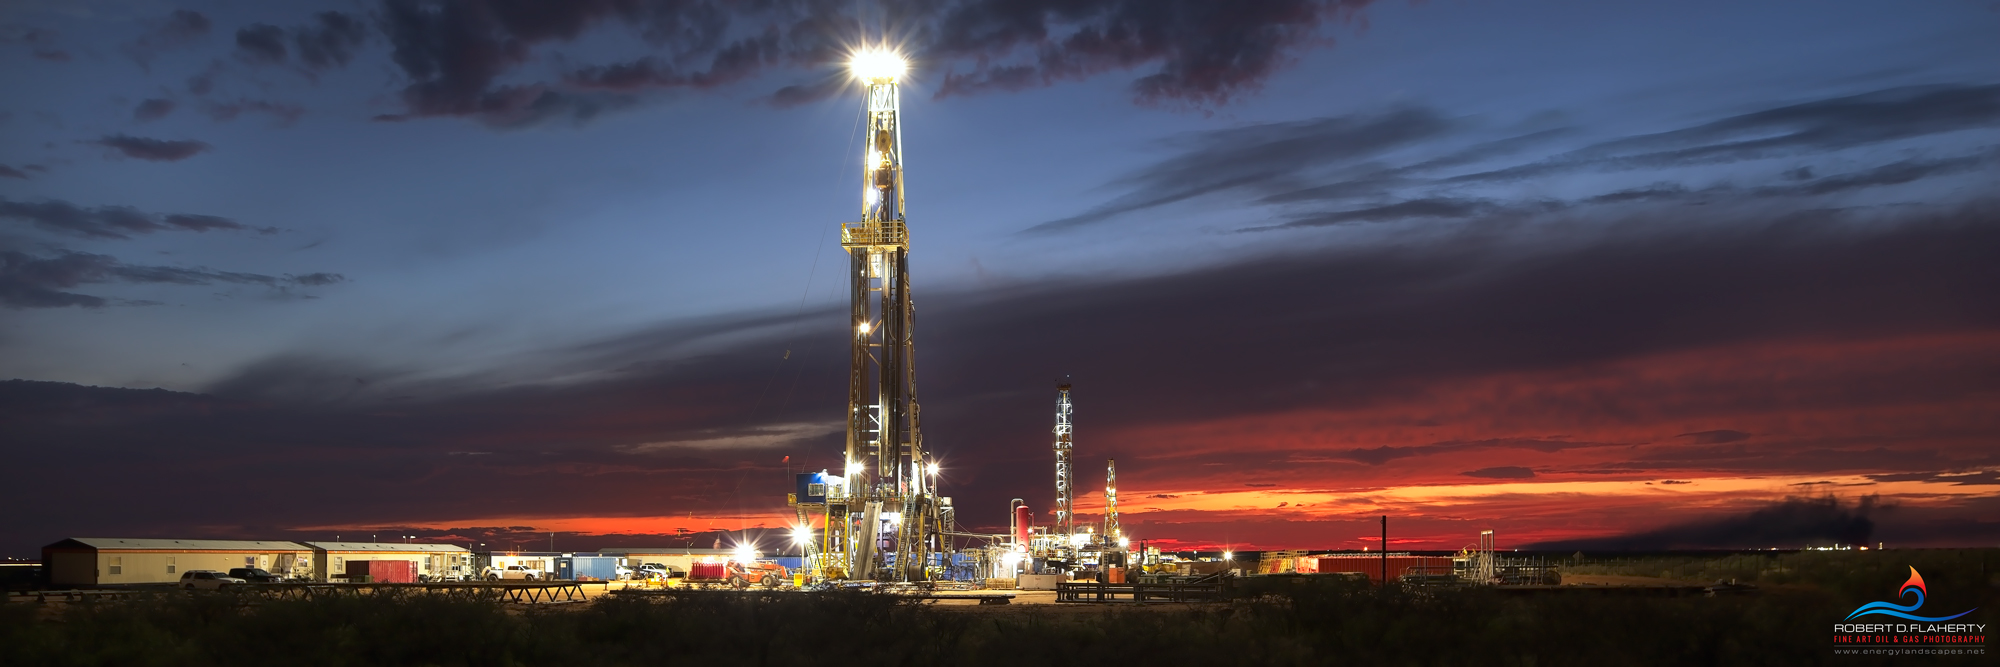 Jal New Mexico, Battle Axe Road, Delaware Basin, thunderstorm, lateral well, drilling rig, sunset, Fall, October, Lea County New Mexico, fine art, photo